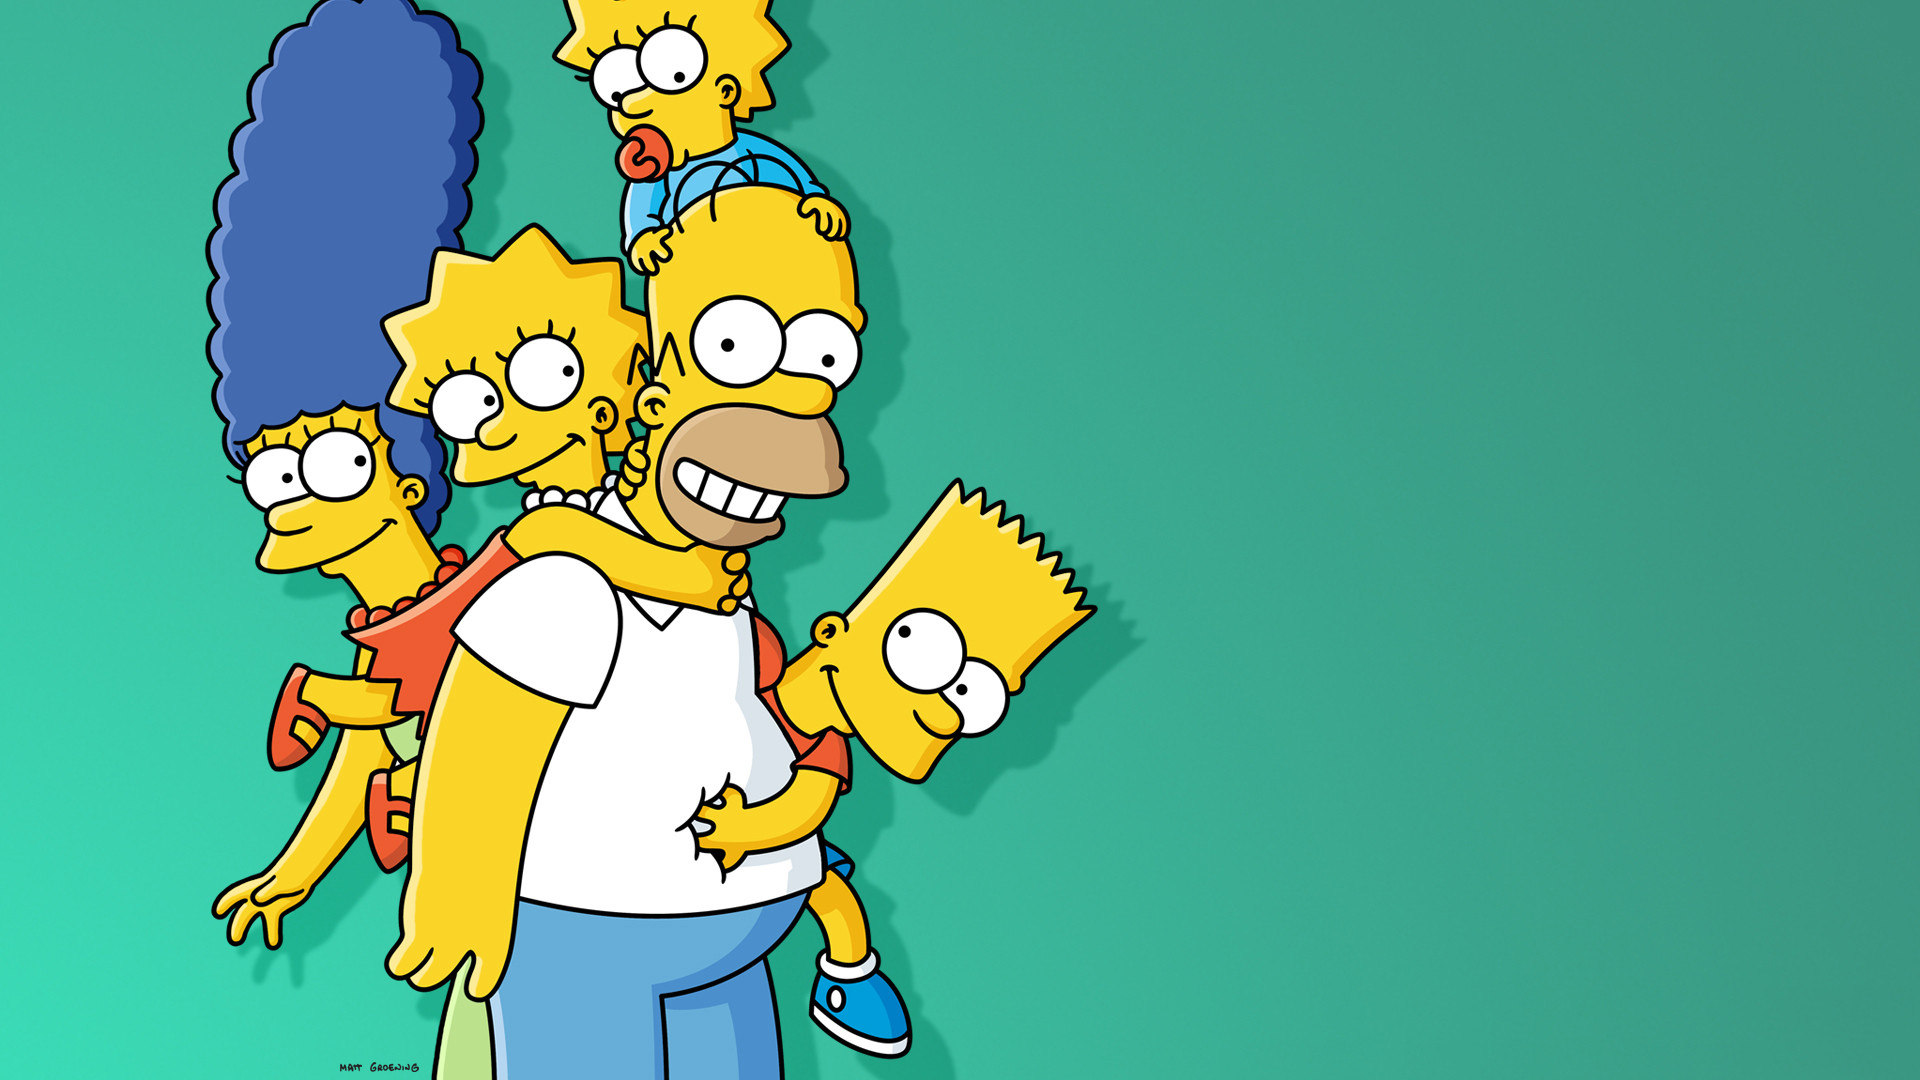 1920x1080 TV Show - The Simpsons Maggie Simpson Marge Simpson Lisa Simpson Homer  Simpson Bart Simpson Wallpaper